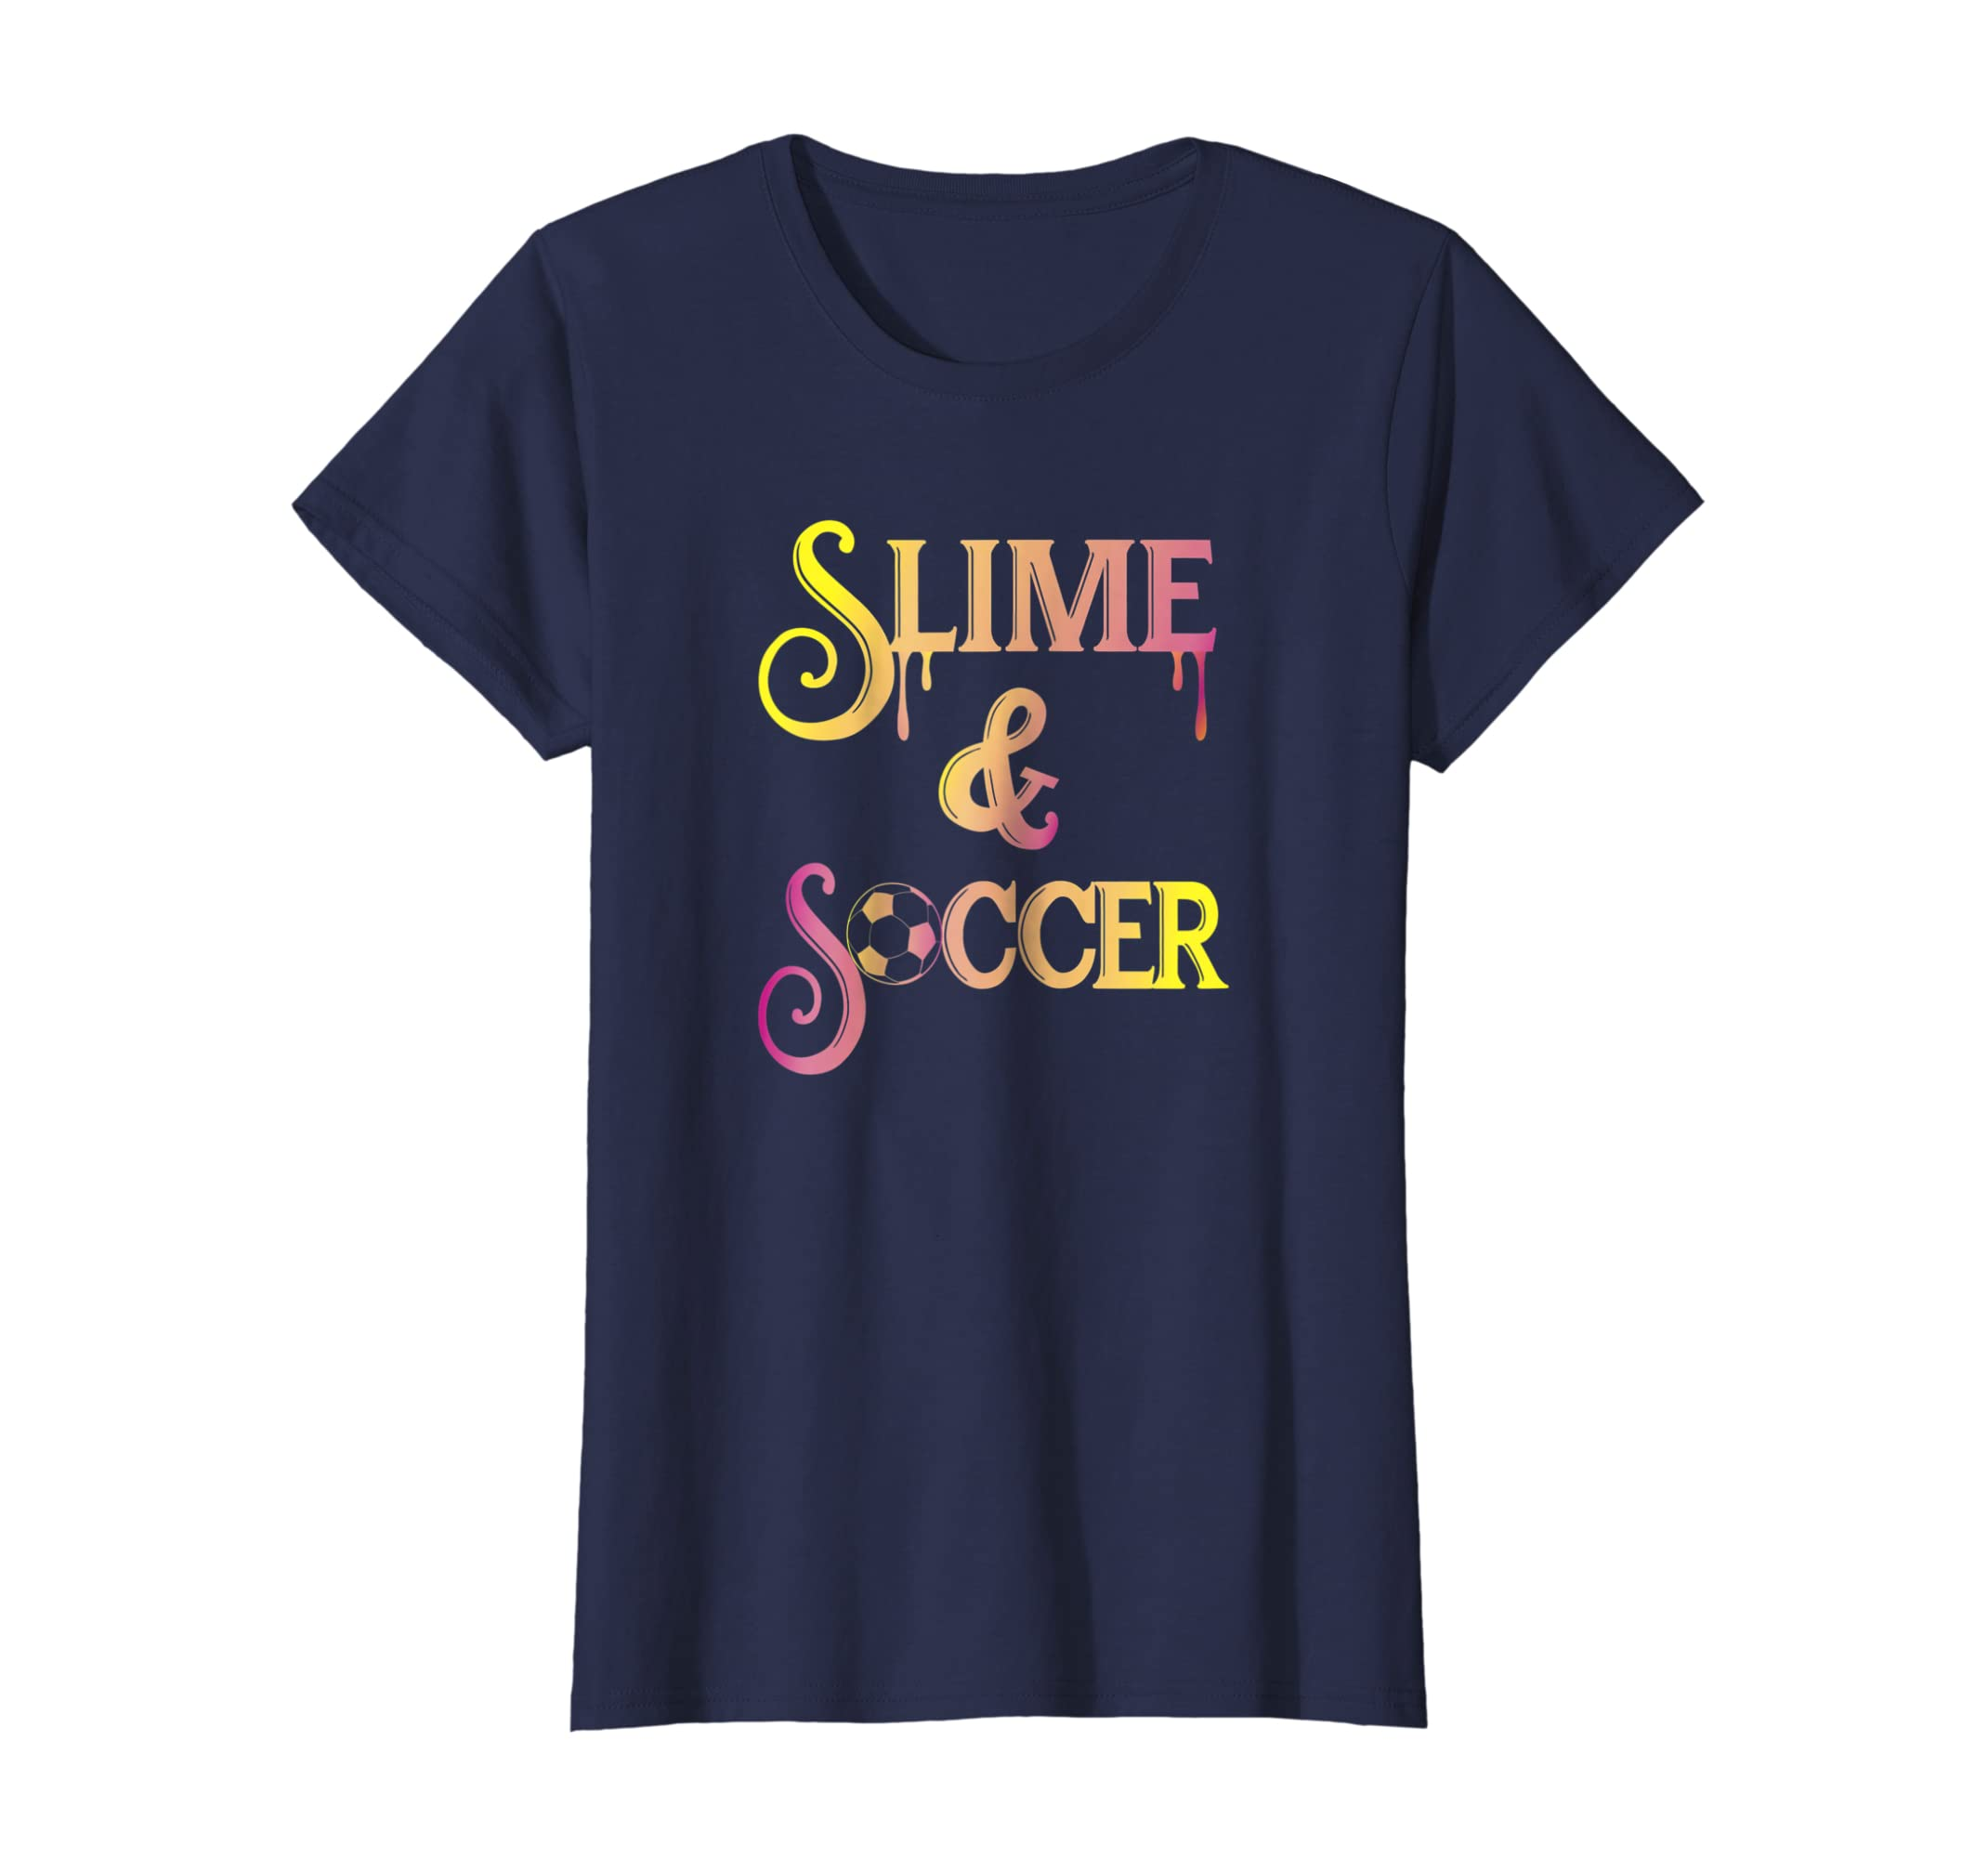 a06439de9 Amazon.com: Slime Shirts for Girls Soccer Girl Gifts: Clothing